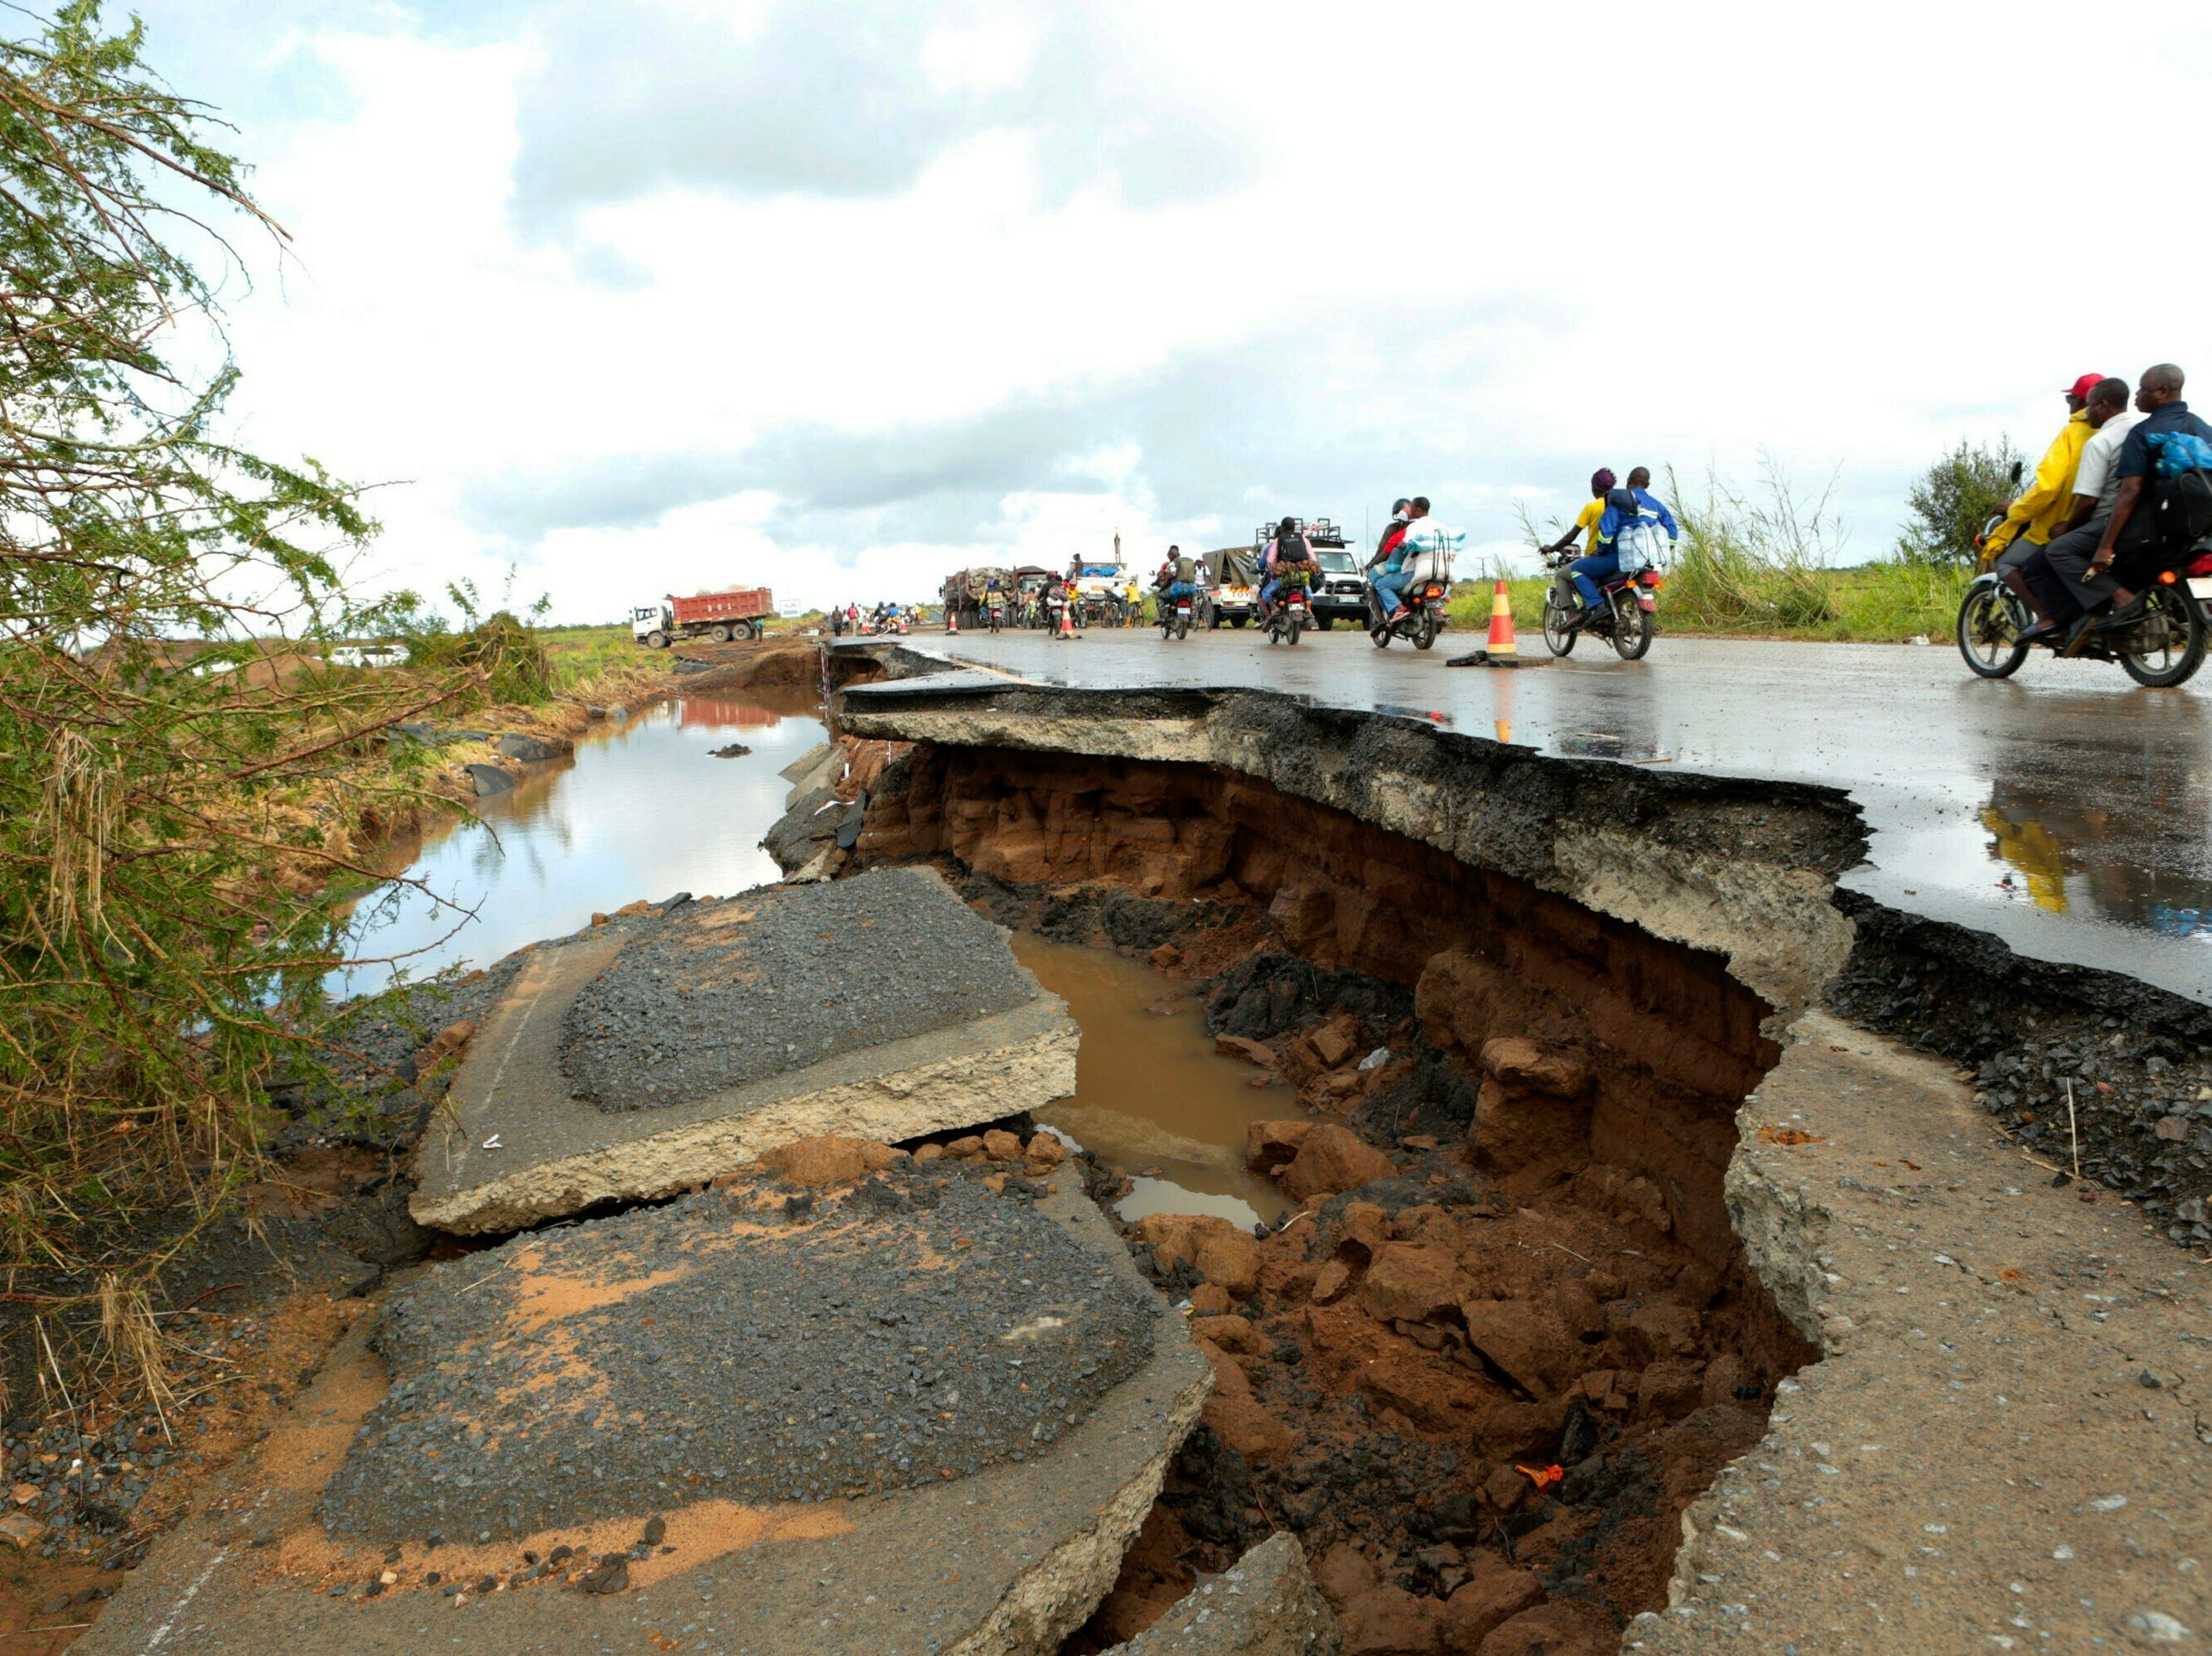 Motorcycles pass through a section of road damaged by Cyclone Idai near Beira, Mozambique on March 21, 2019.